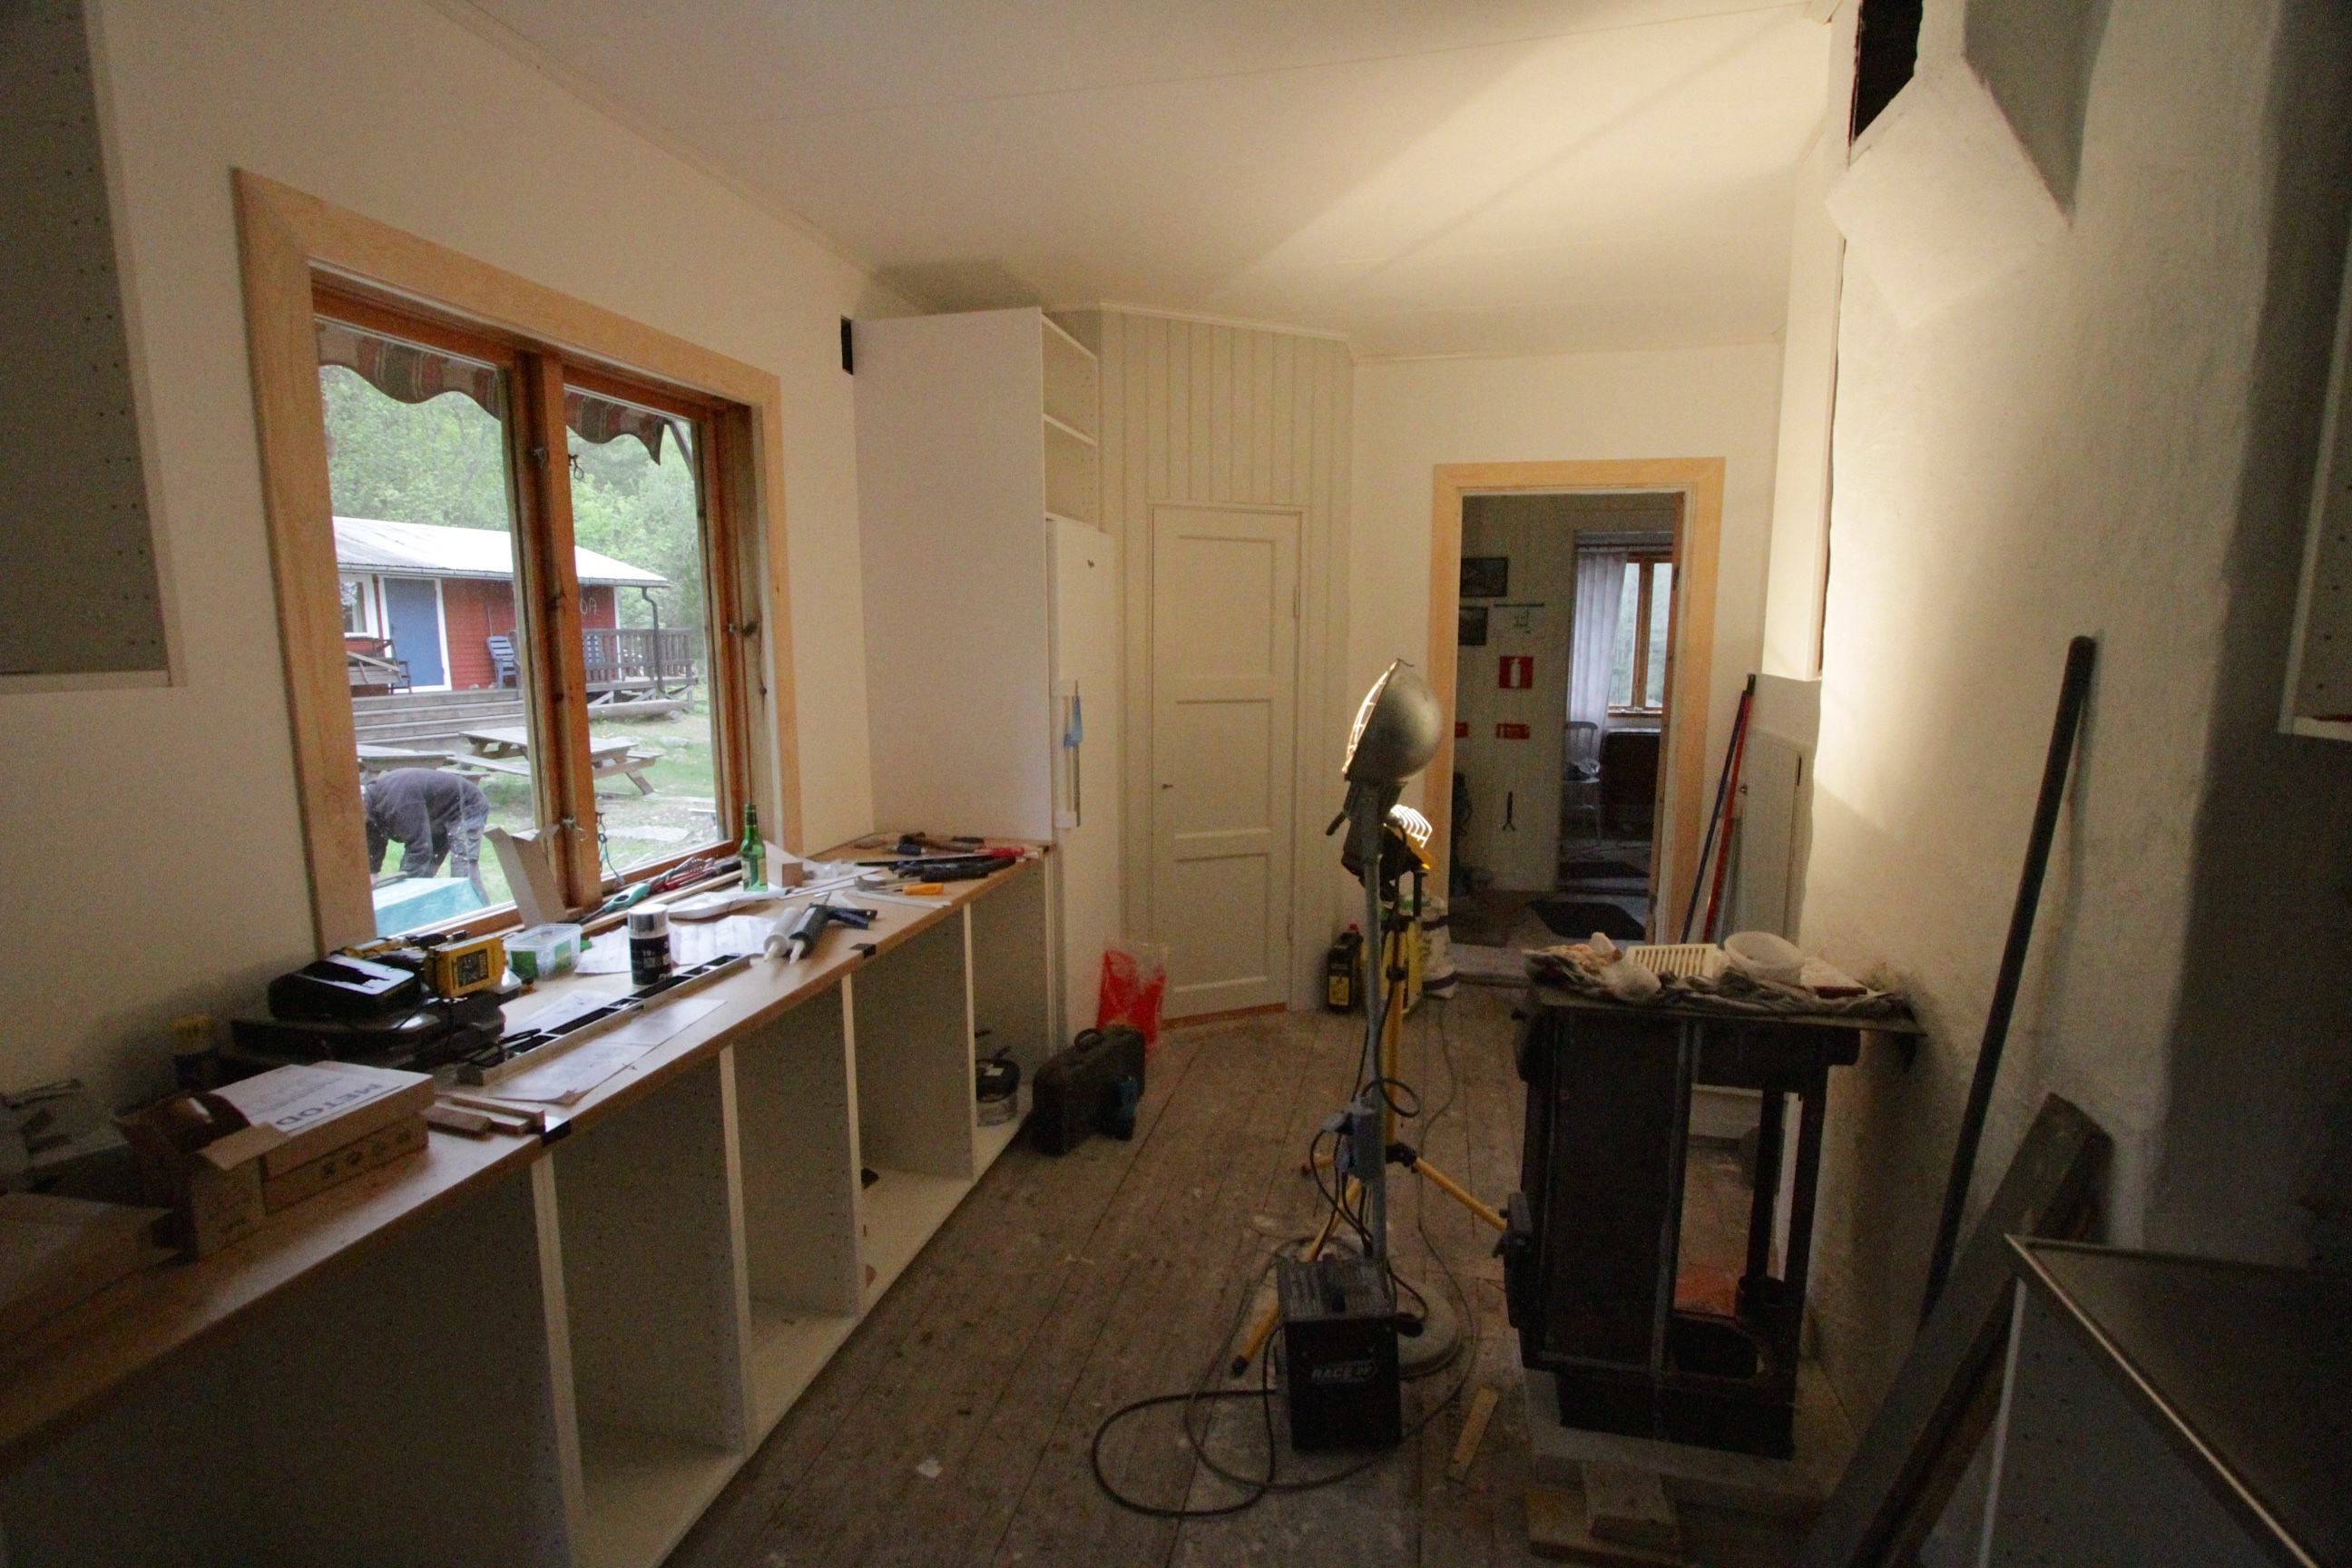 /webstorage/wp content/blogs.dir/46/files/2015/05/Köksrenovering3